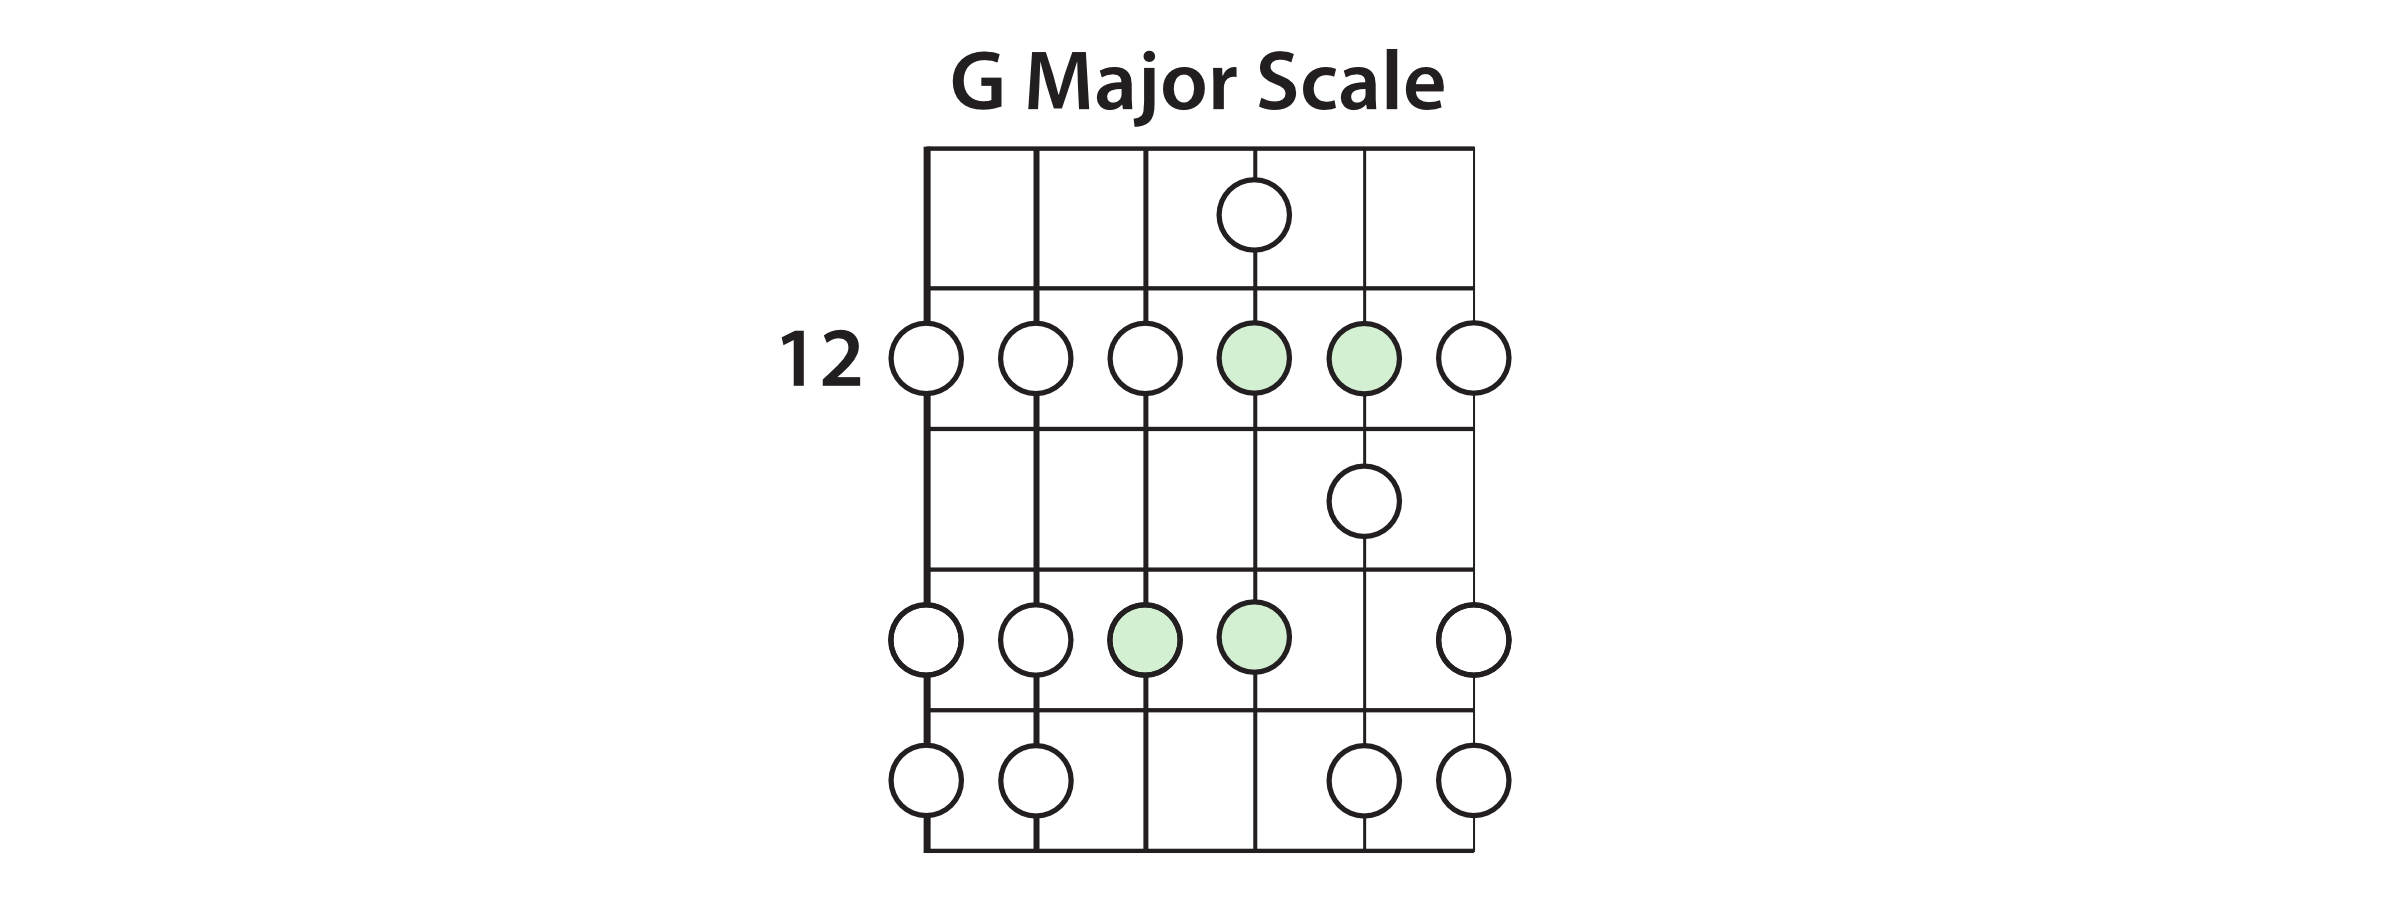 Gravity Notes In G Major Scale